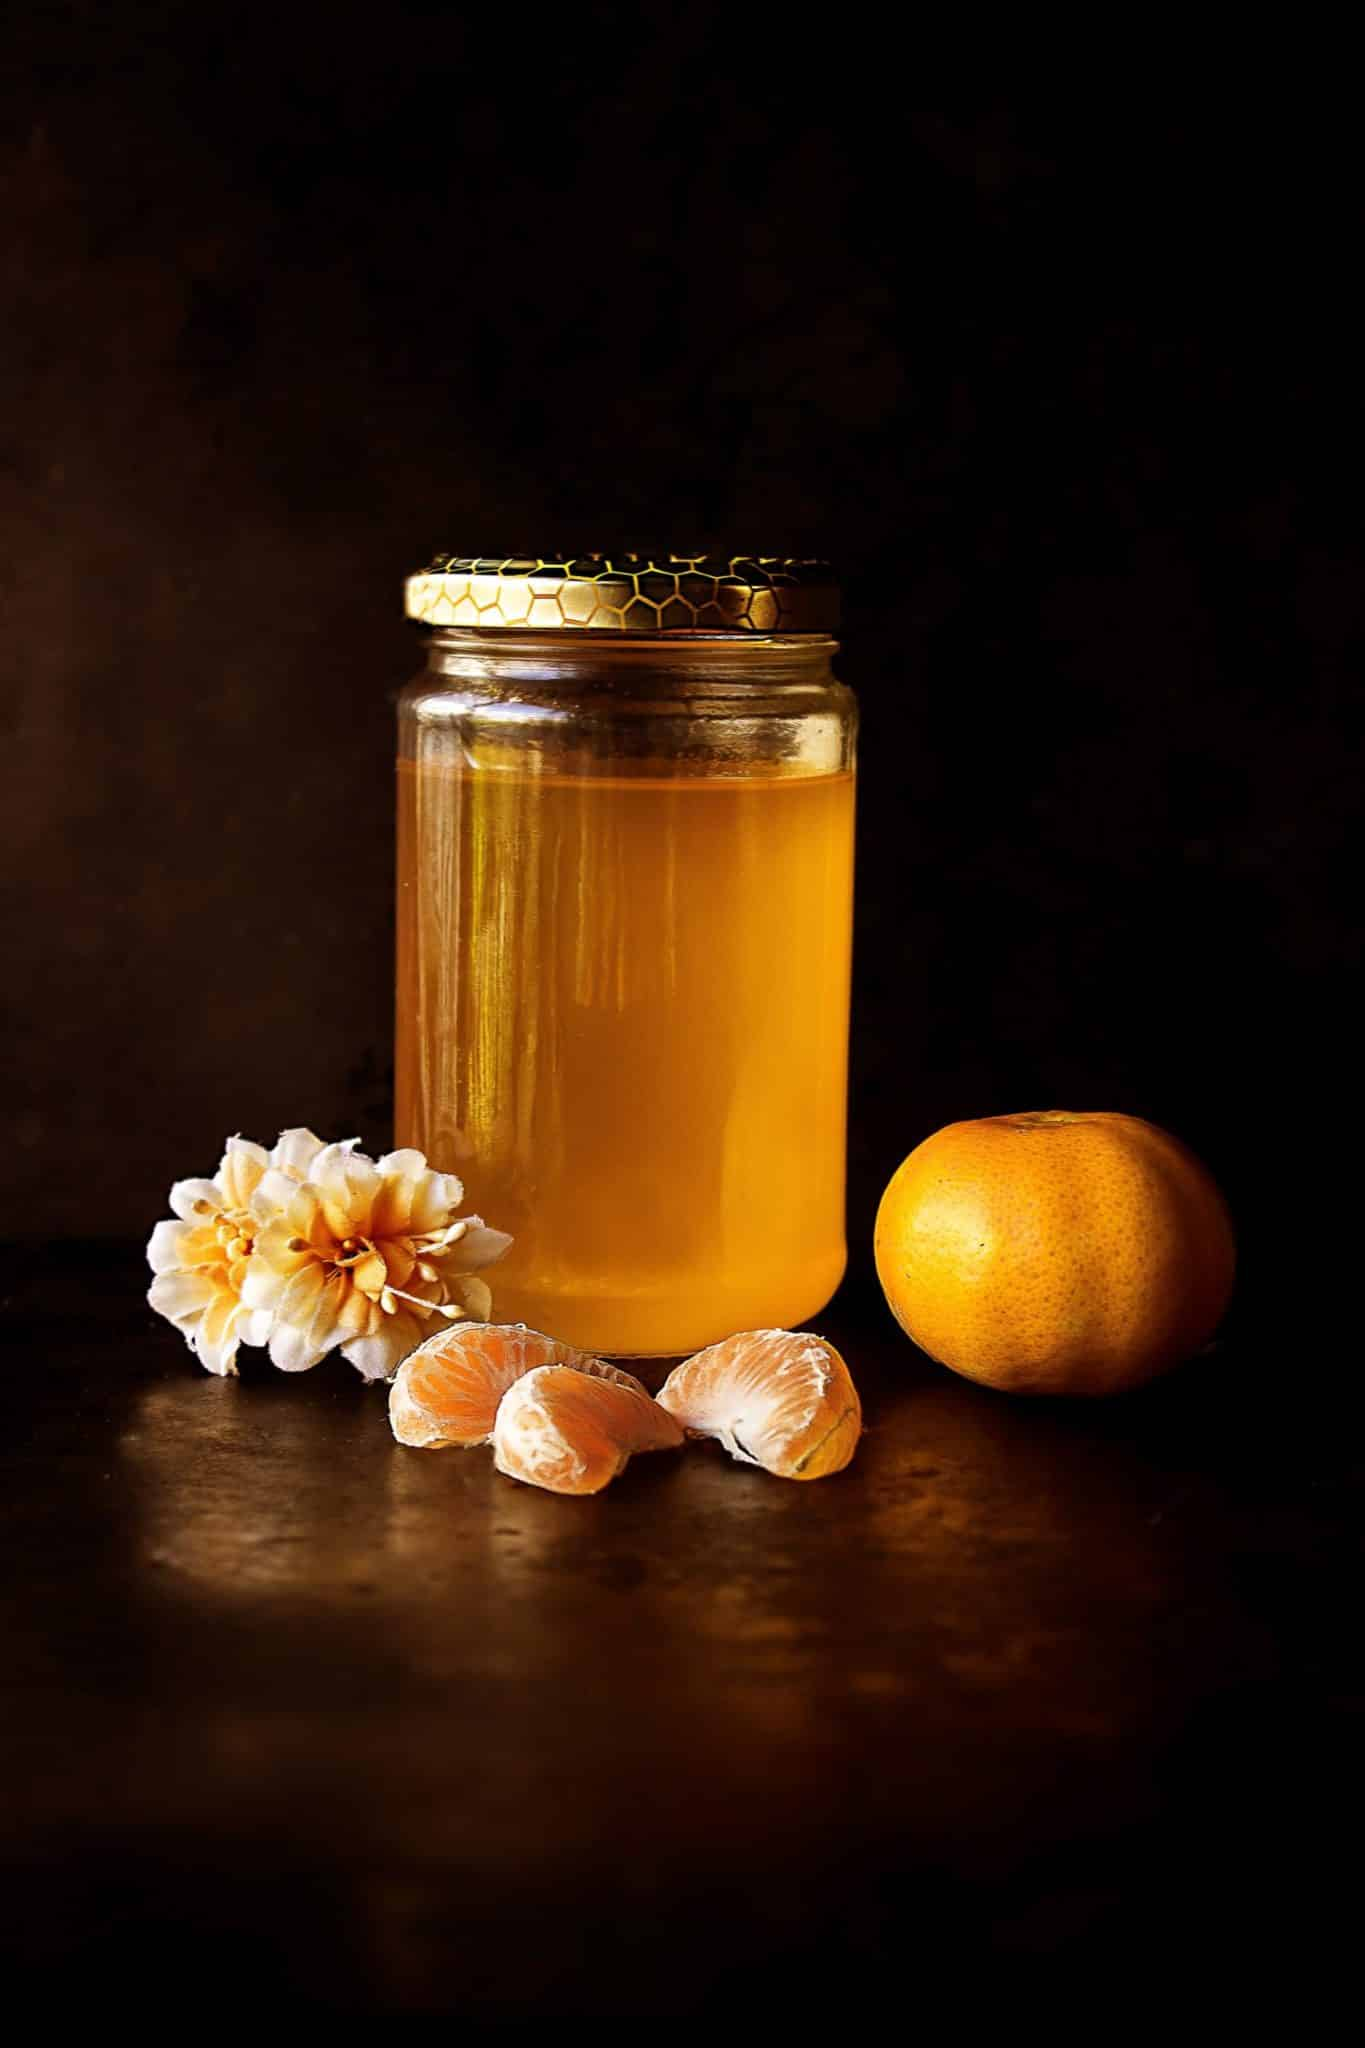 Honey in a jar, clementine, and a flower